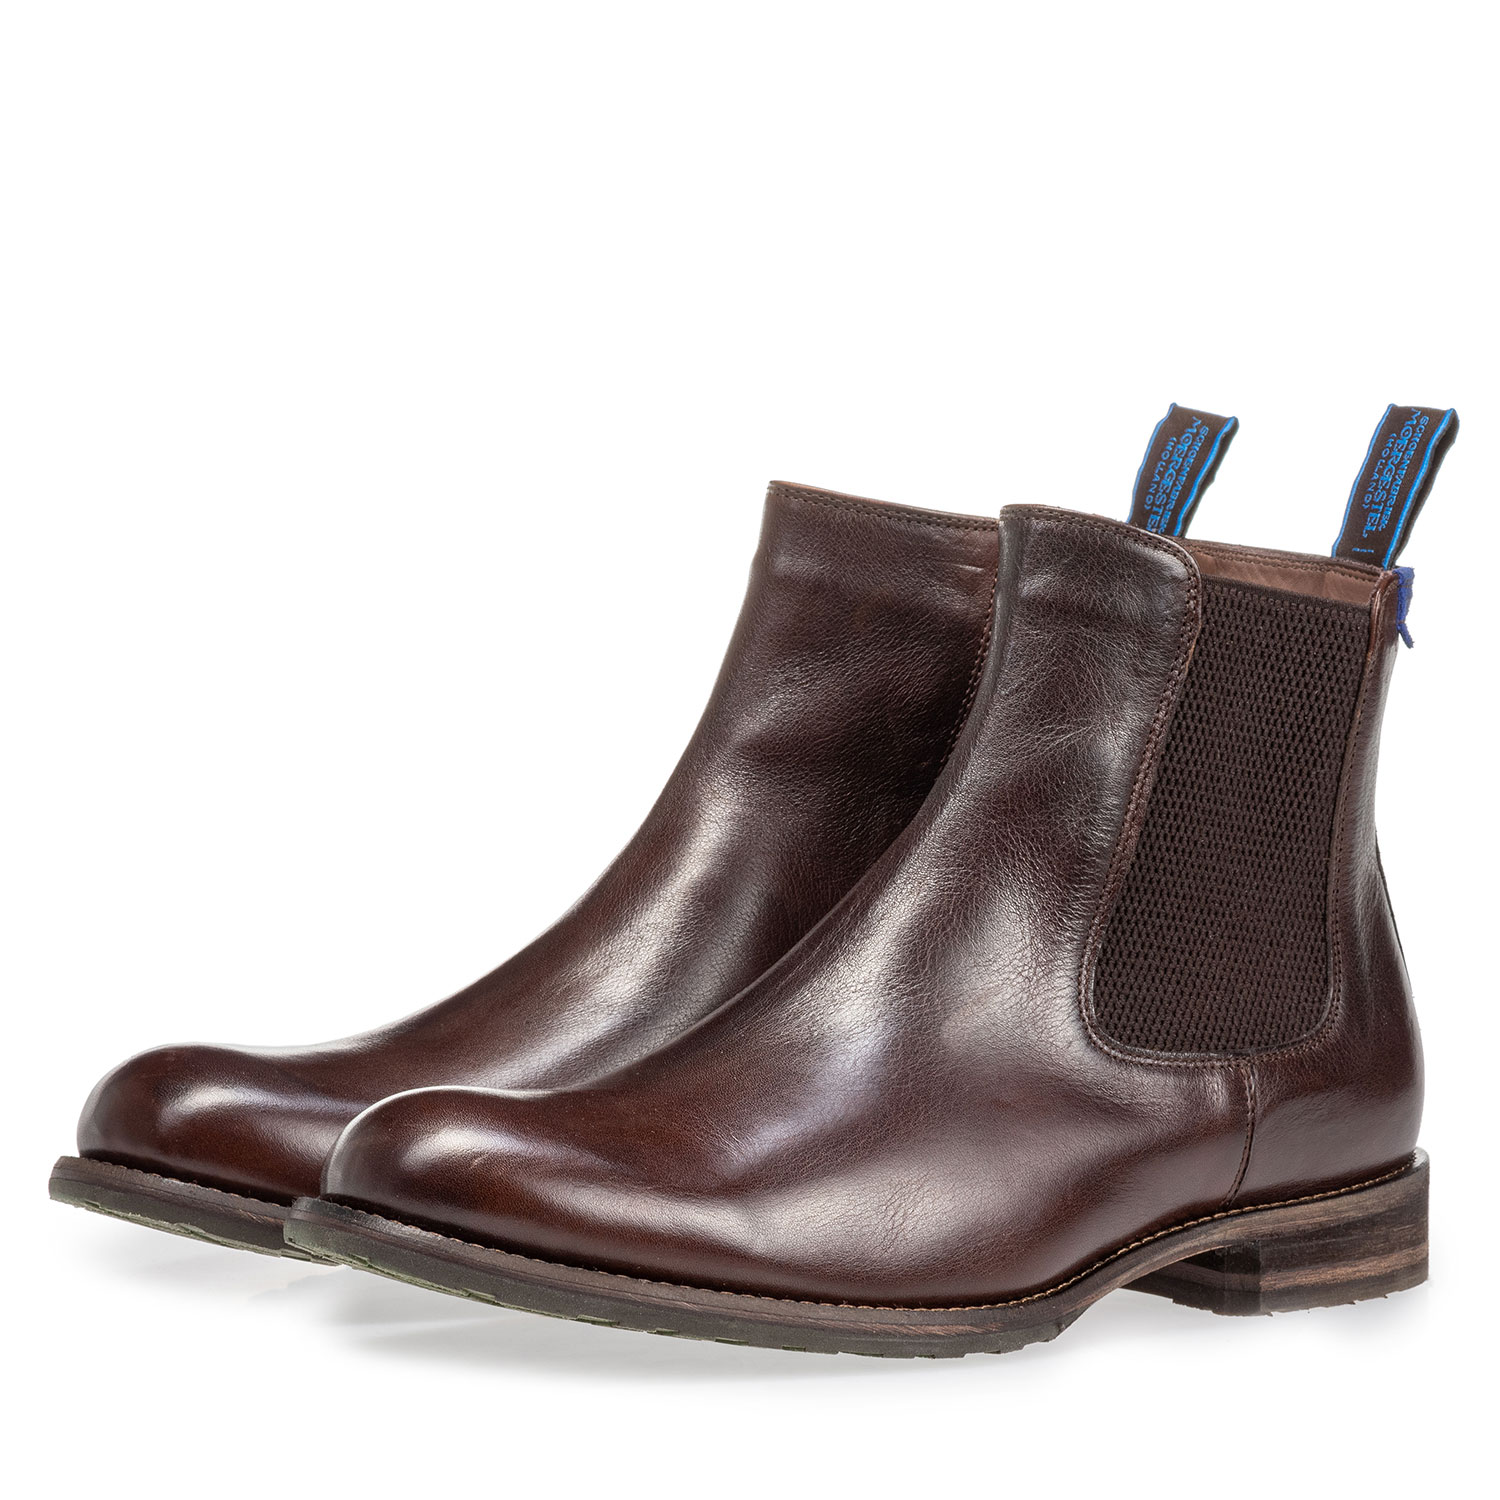 10289/21 - Lambskin lined brown Chelsea boot